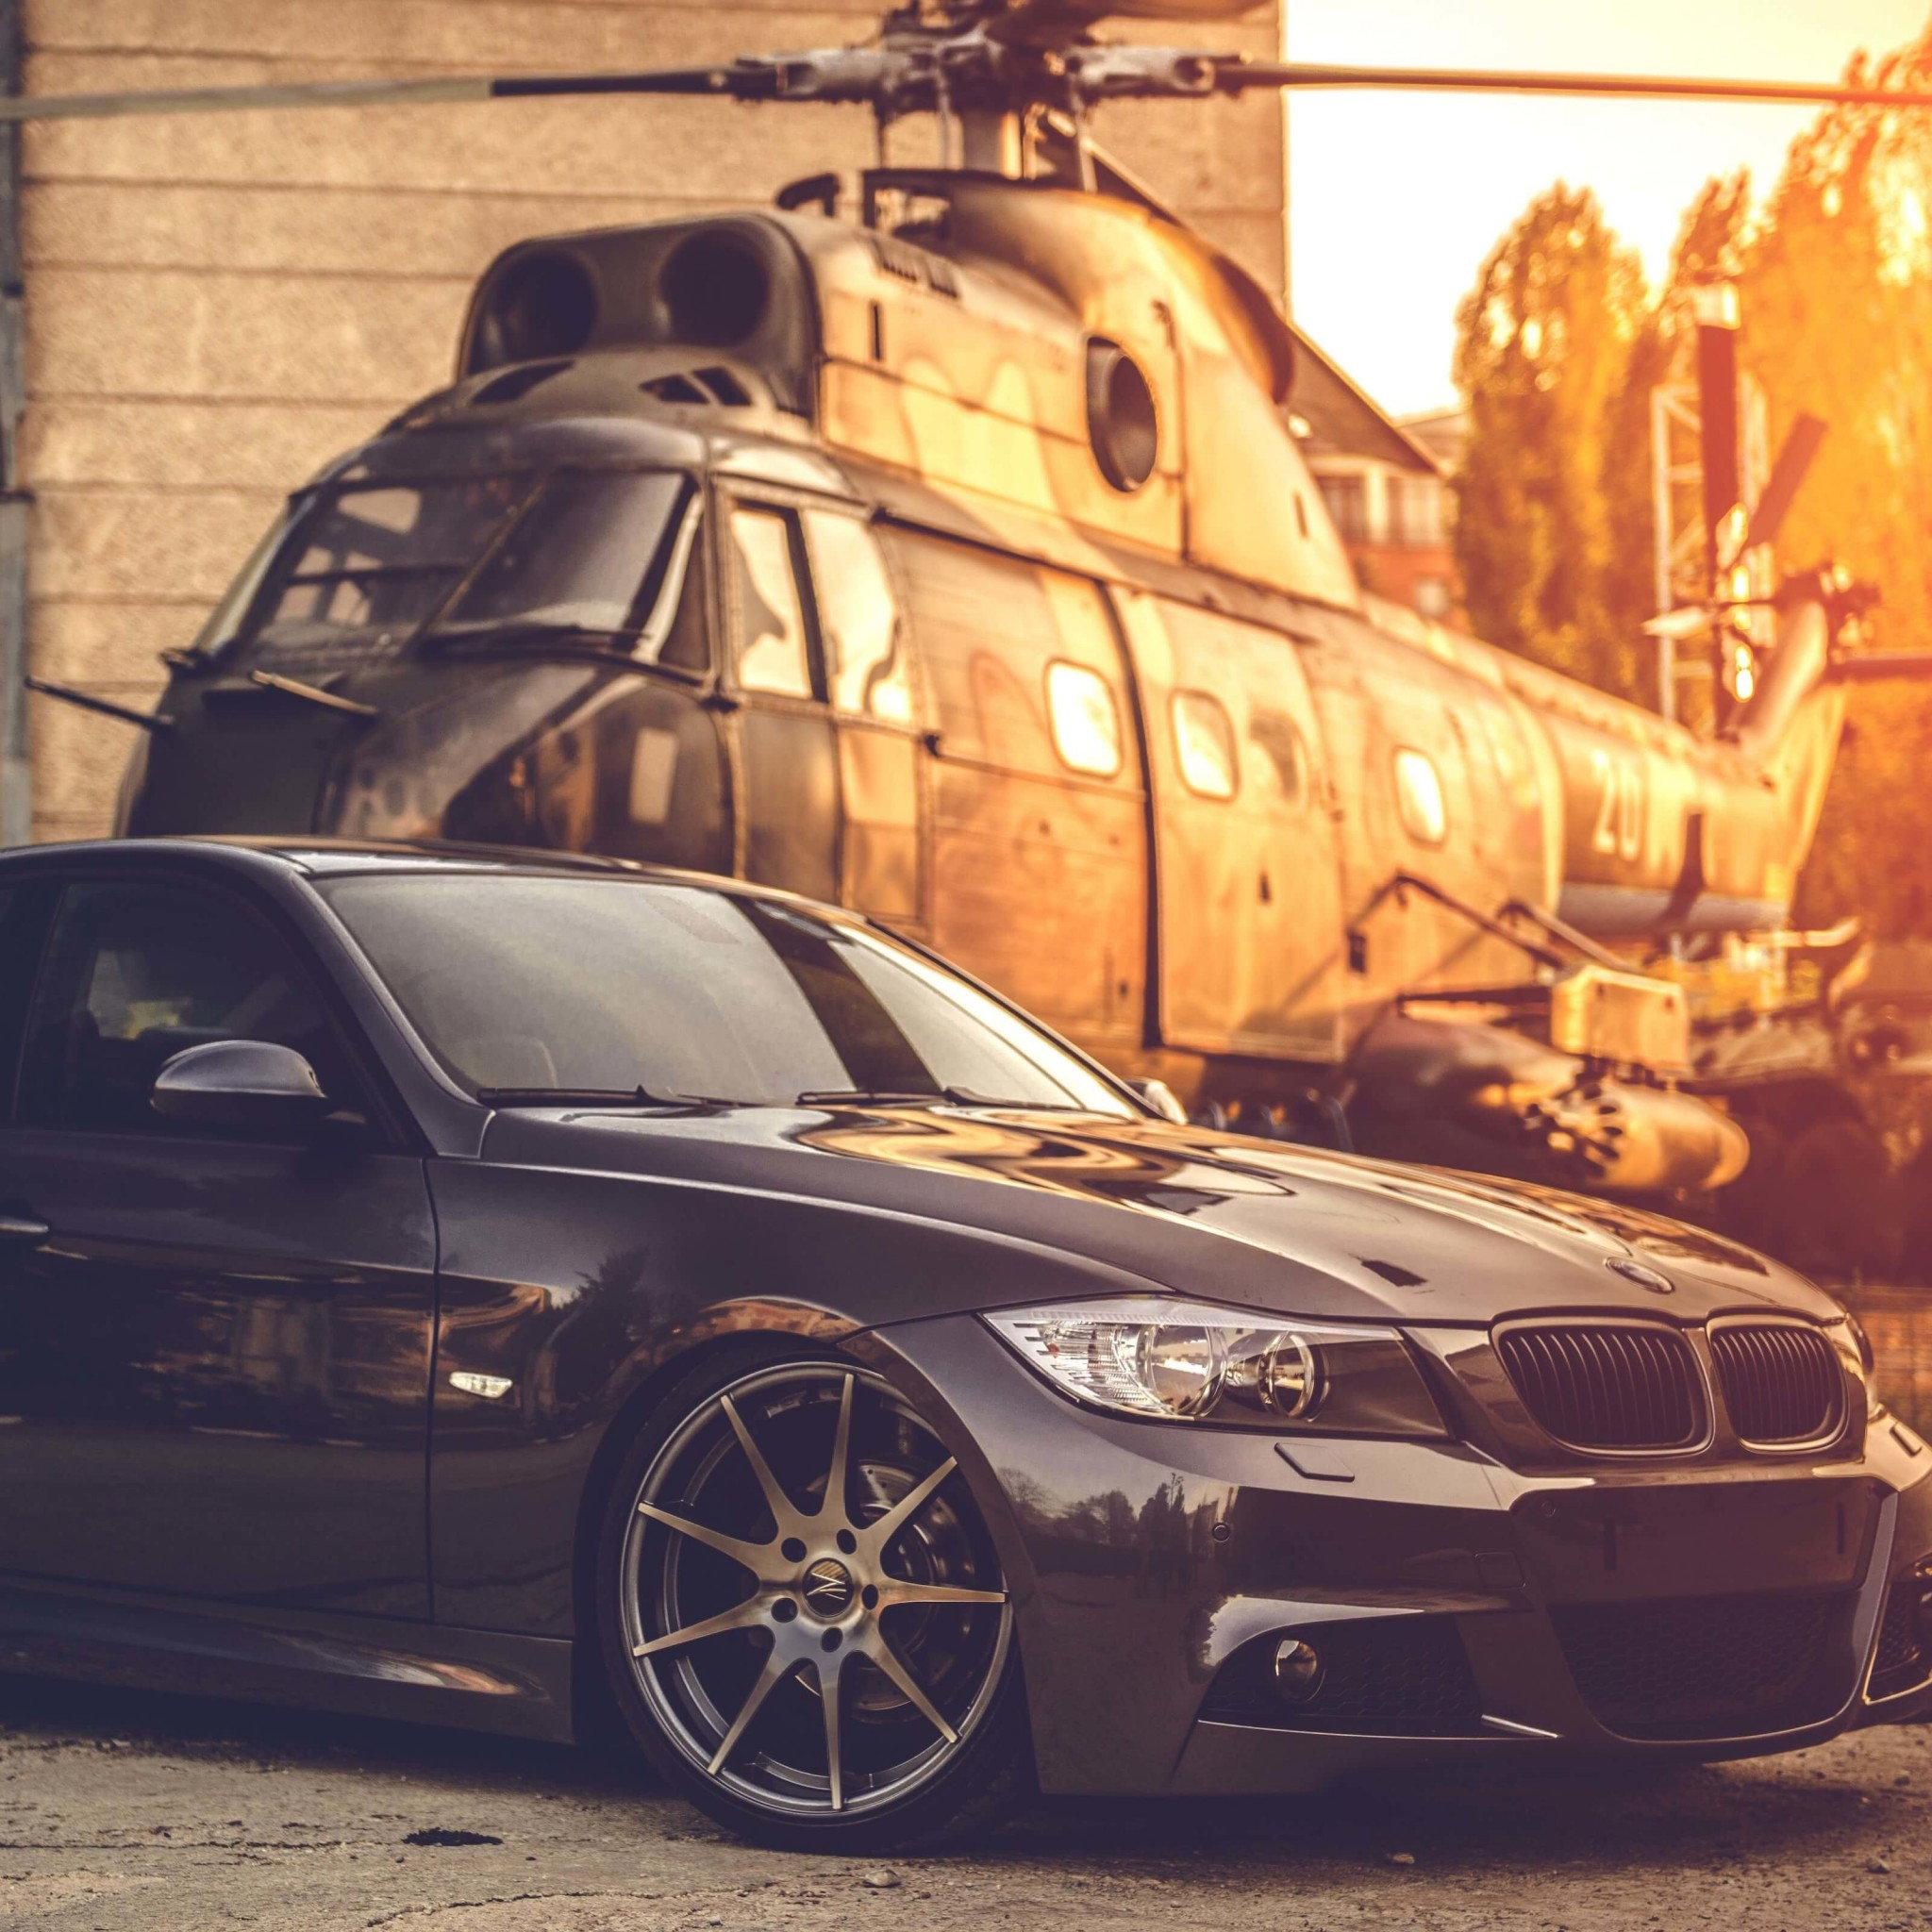 BMW E90 on Z-Performance Wheels Wallpaper for Google Nexus 9